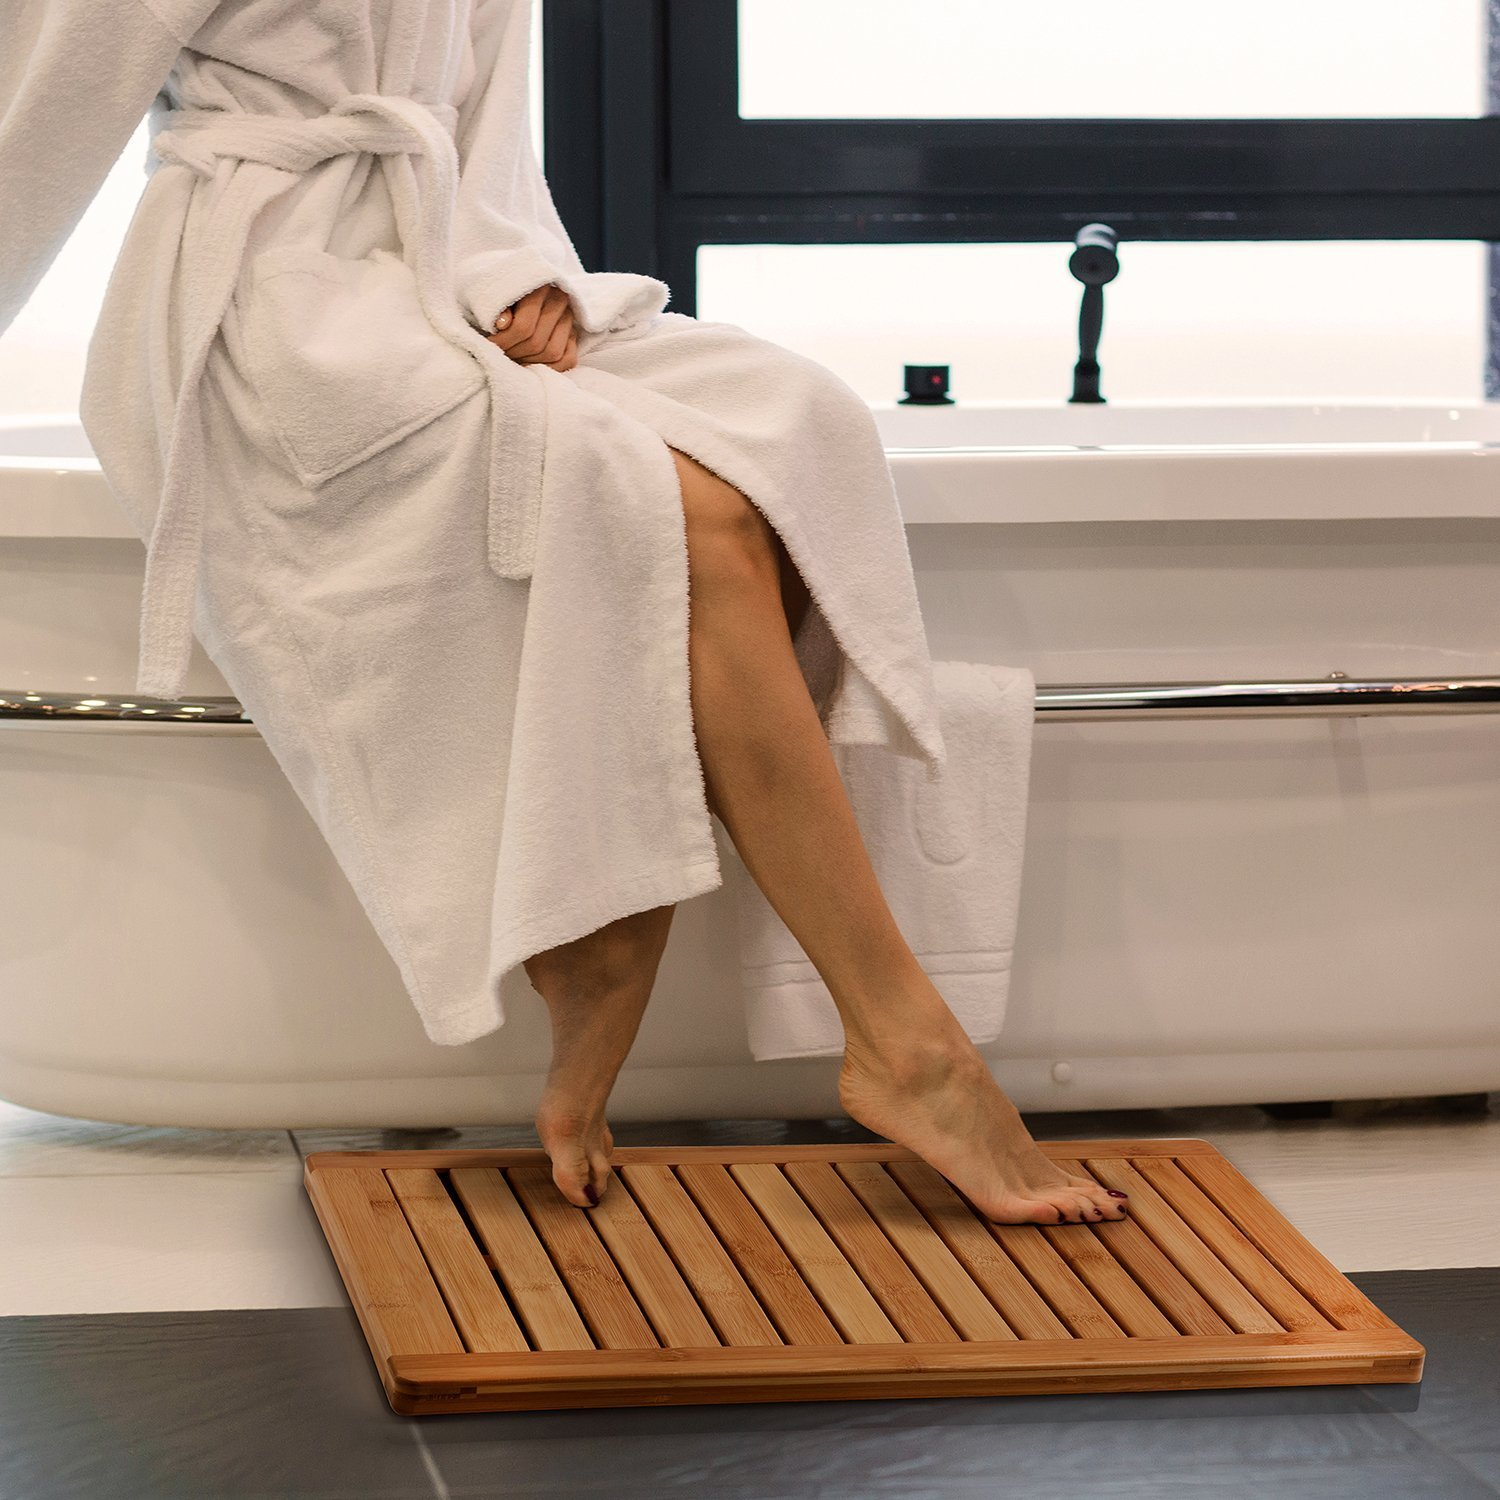 Bamboo Shower Seat Bench with Bathroom Floor Mat for Indoor and Outdoor Decor, Made of Natural Moso Bamboo, Ideal for Home Spa, Shower, and Outdoor Seating in your Garden. By Bambusi